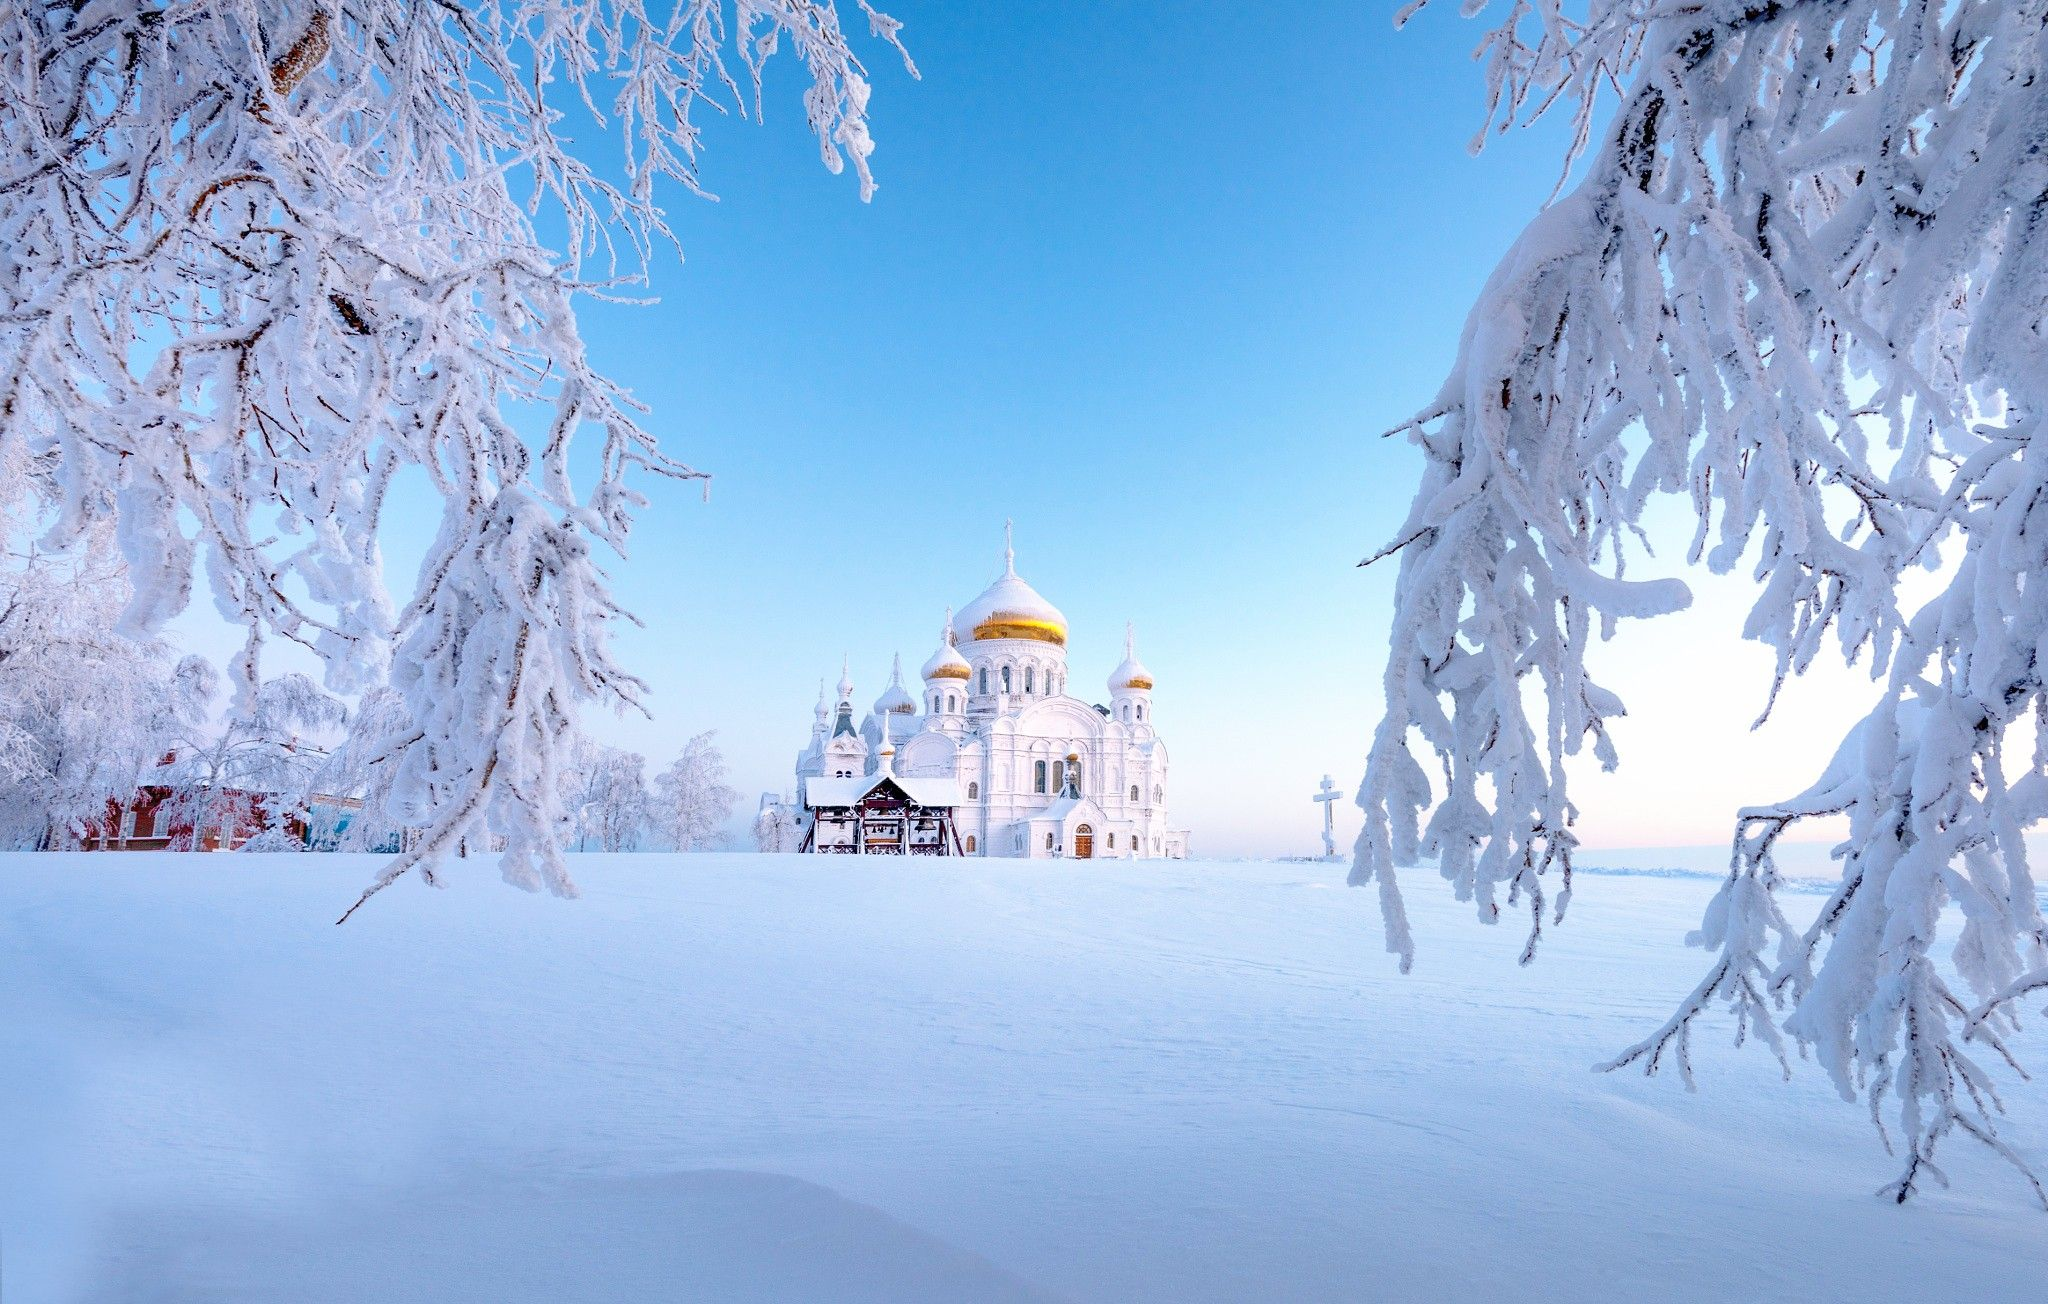 Pin By Paul On Rossiya Russia I Love You Winter Pictures Winter Scenery Winter Photography